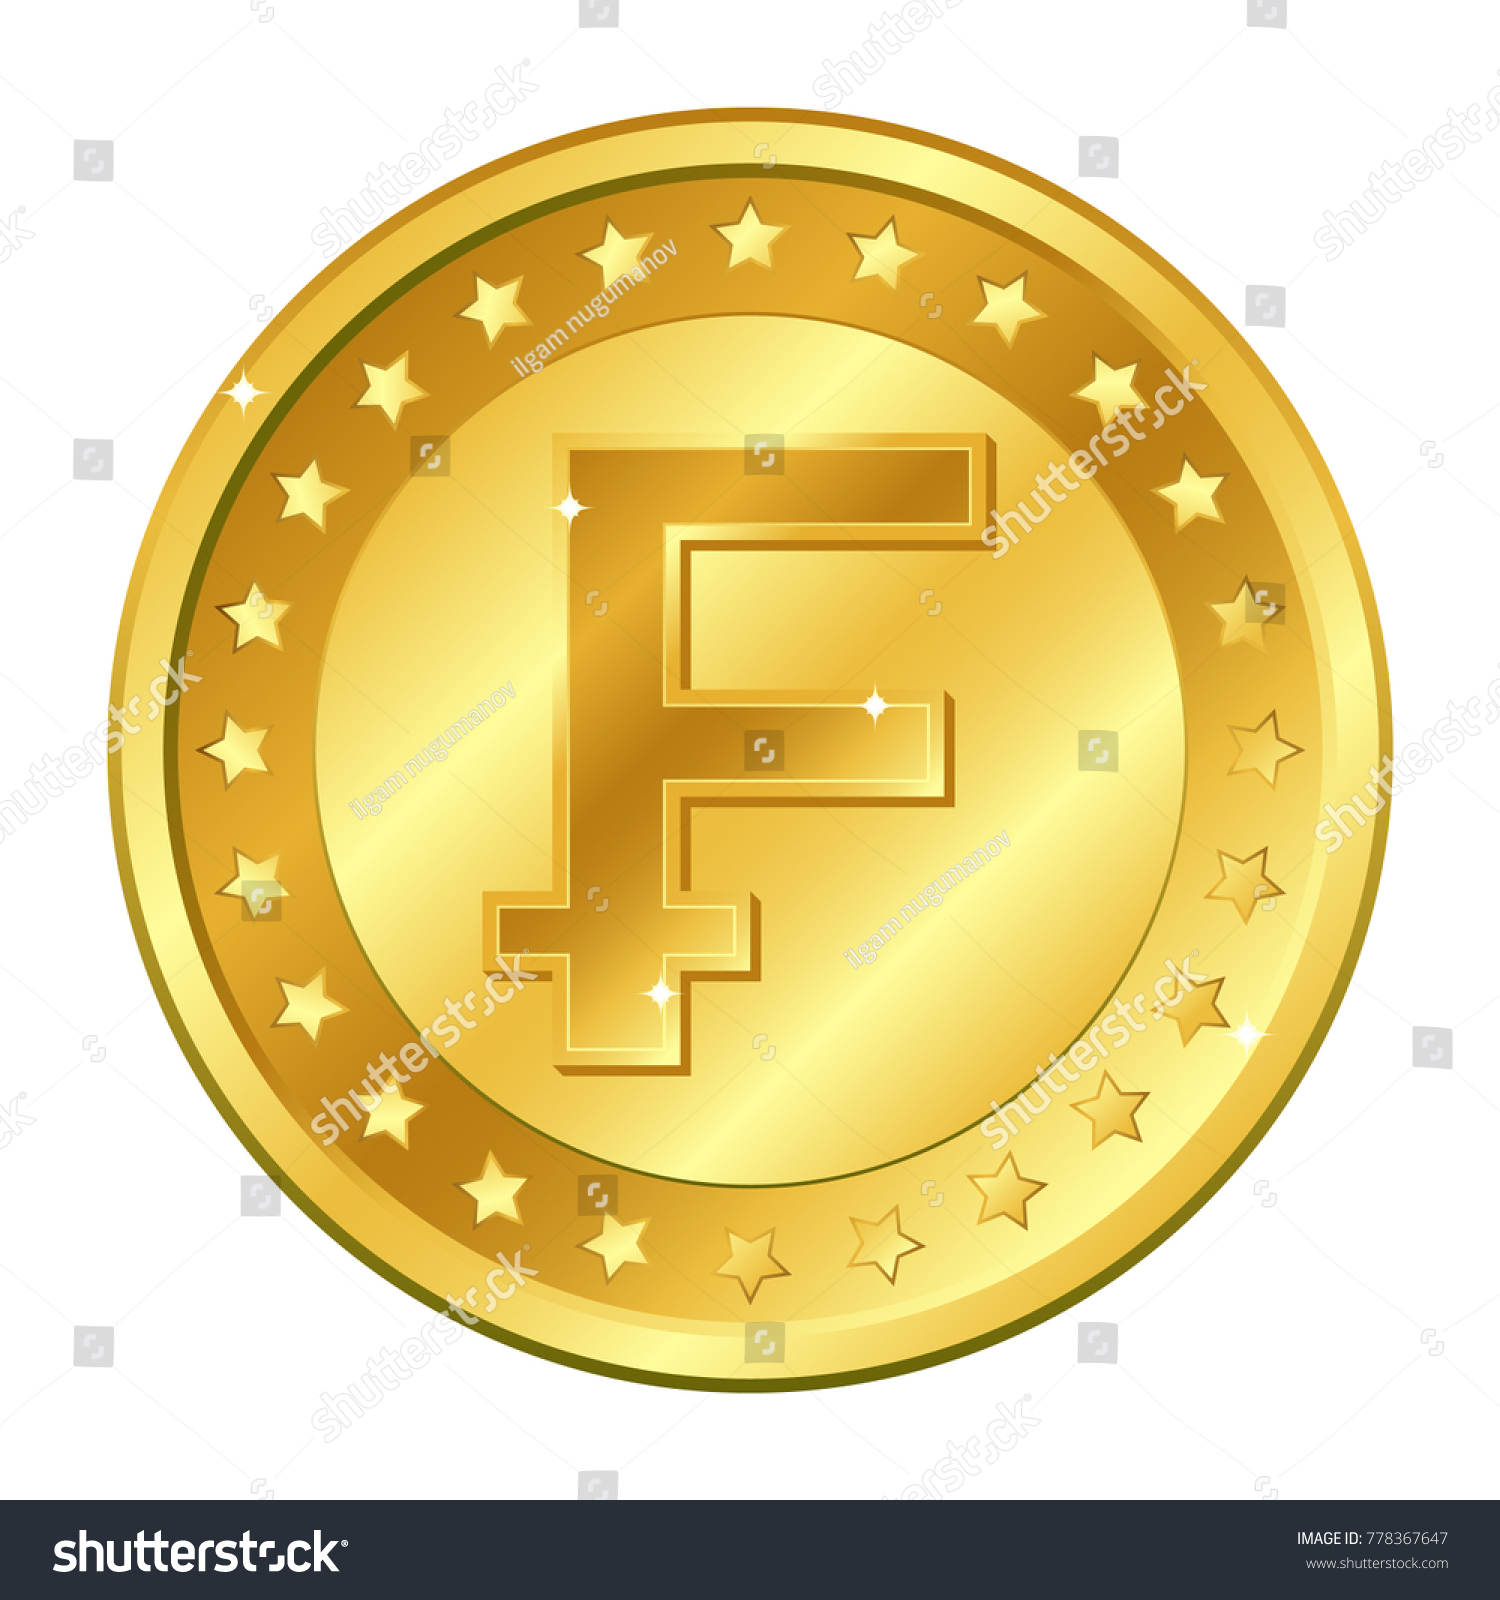 Swiss franc currency gold coin stars stock vector 778367647 swiss franc currency gold coin with stars switzerland sign vector illustration isolated on white buycottarizona Images